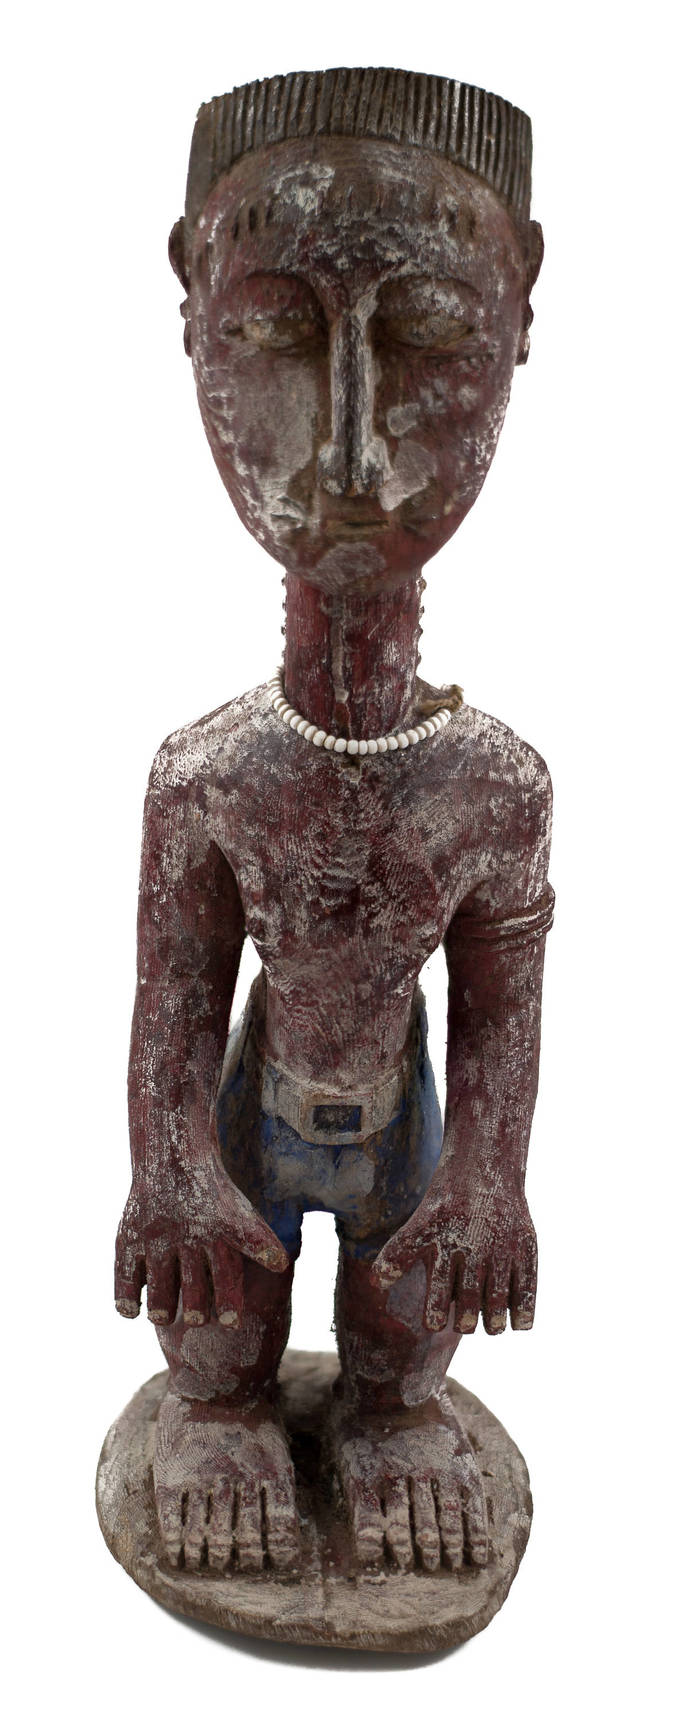 Vintage & Hand Carved, Old African Statue - Perhaps Baule, Unique african